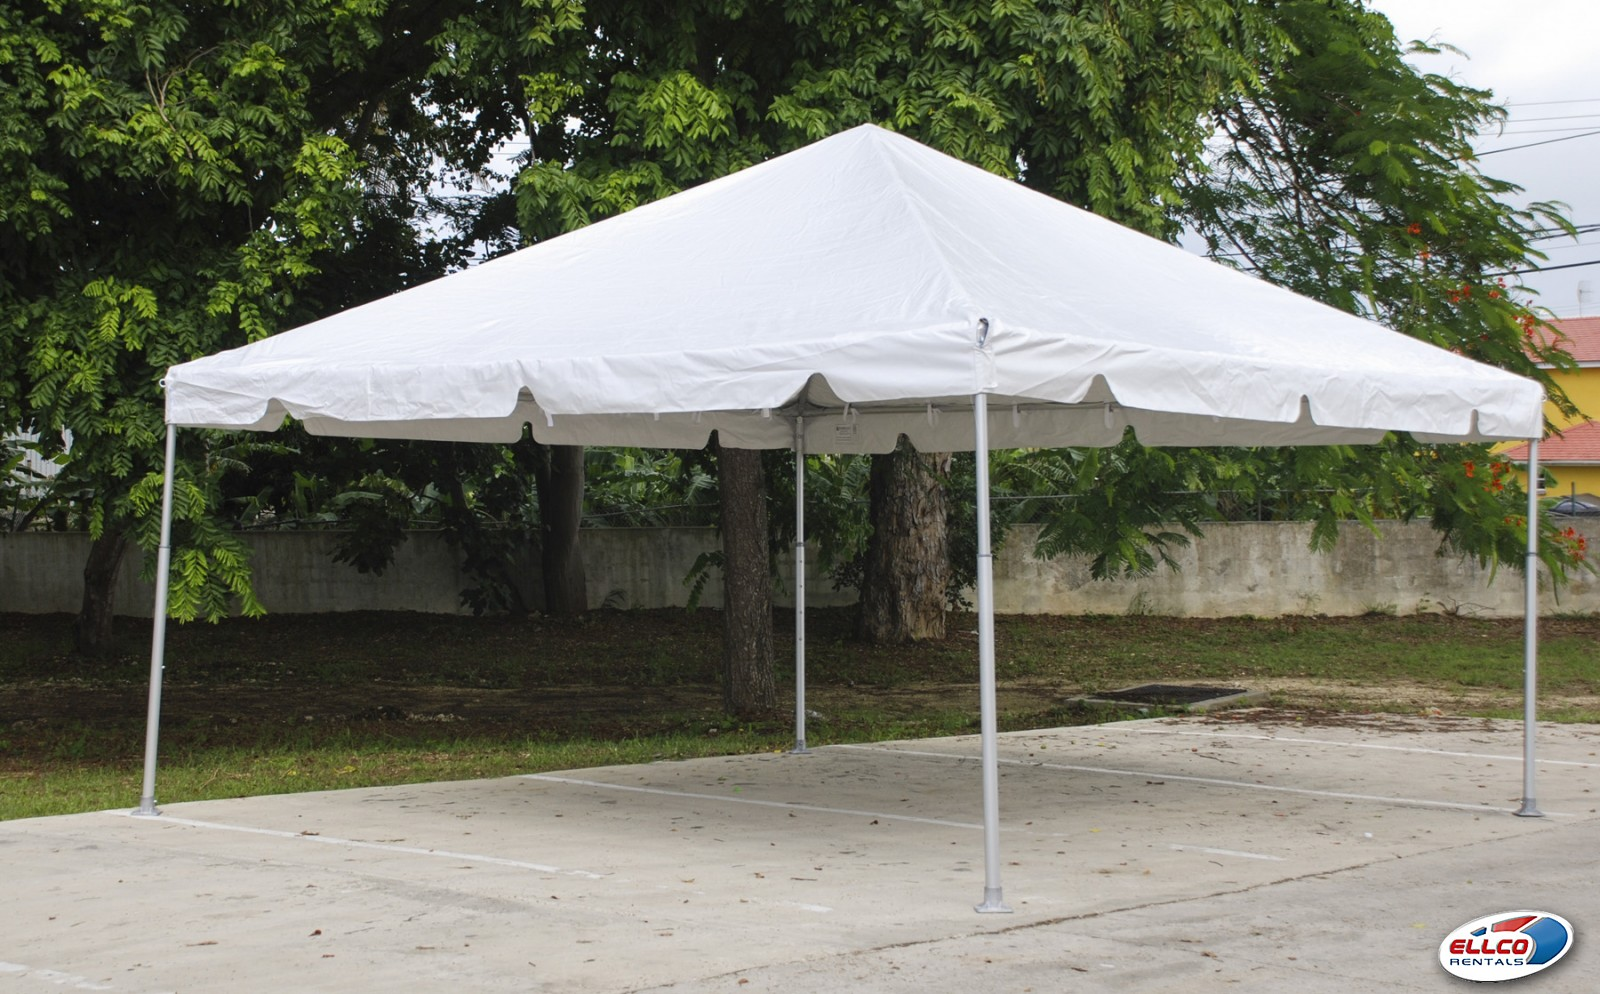 Do it yourself tents in 2 sizes in tents at ellco rentals event do it yourself tents in 2 sizes solutioingenieria Gallery